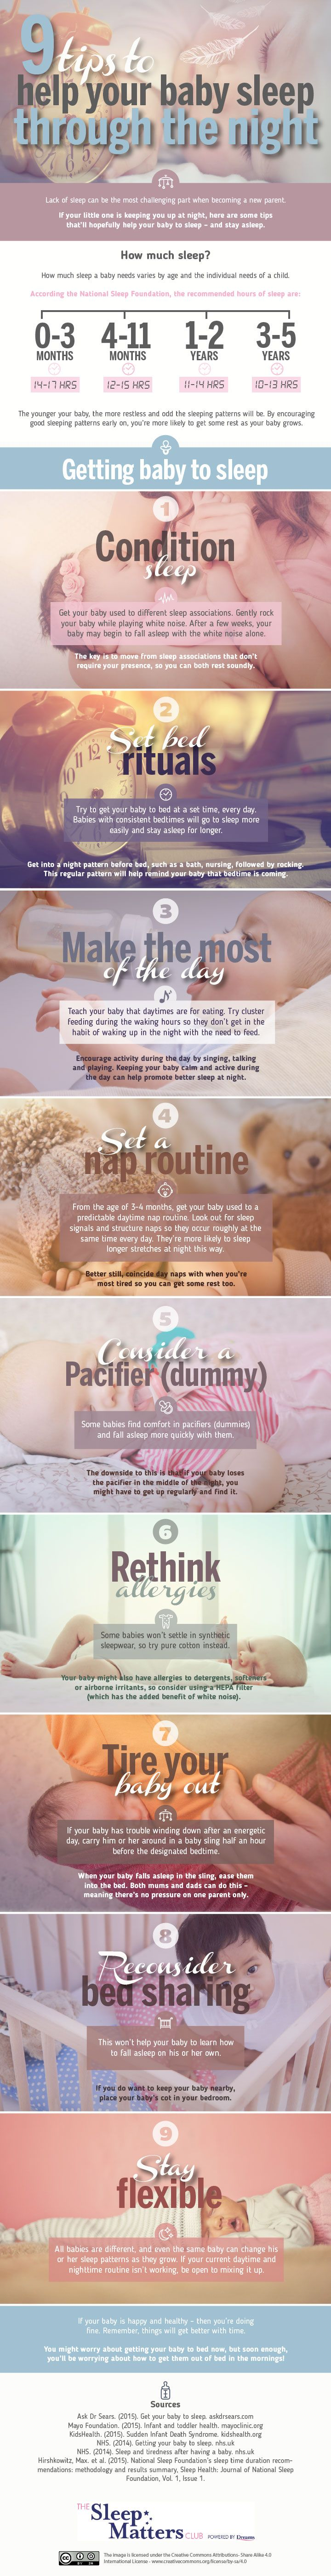 9 Tips To Help Your Baby Sleep Through The Night, an infographic from The Sleep Matters Club